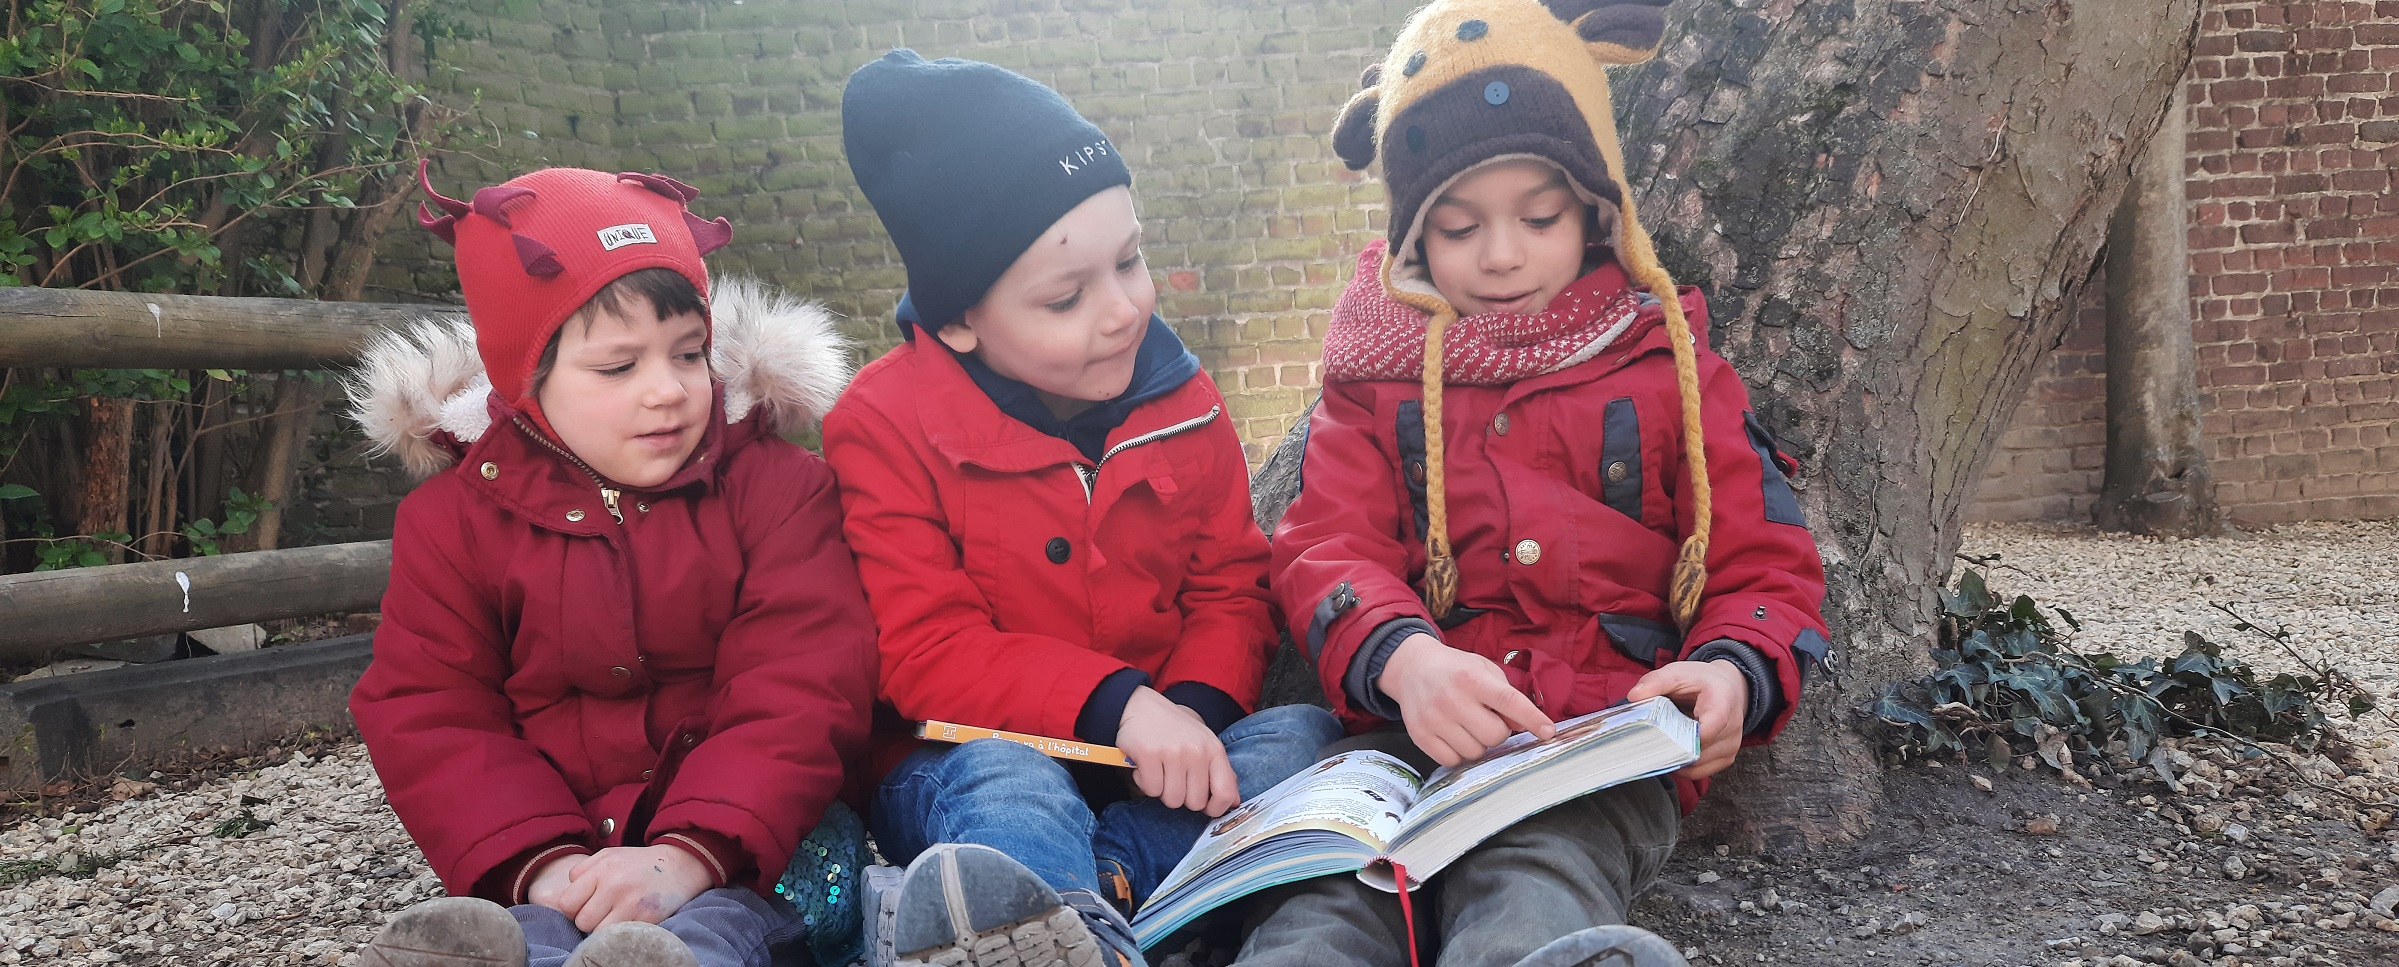 Three children sitting on the ground and one of them showing something in a book to the other two.